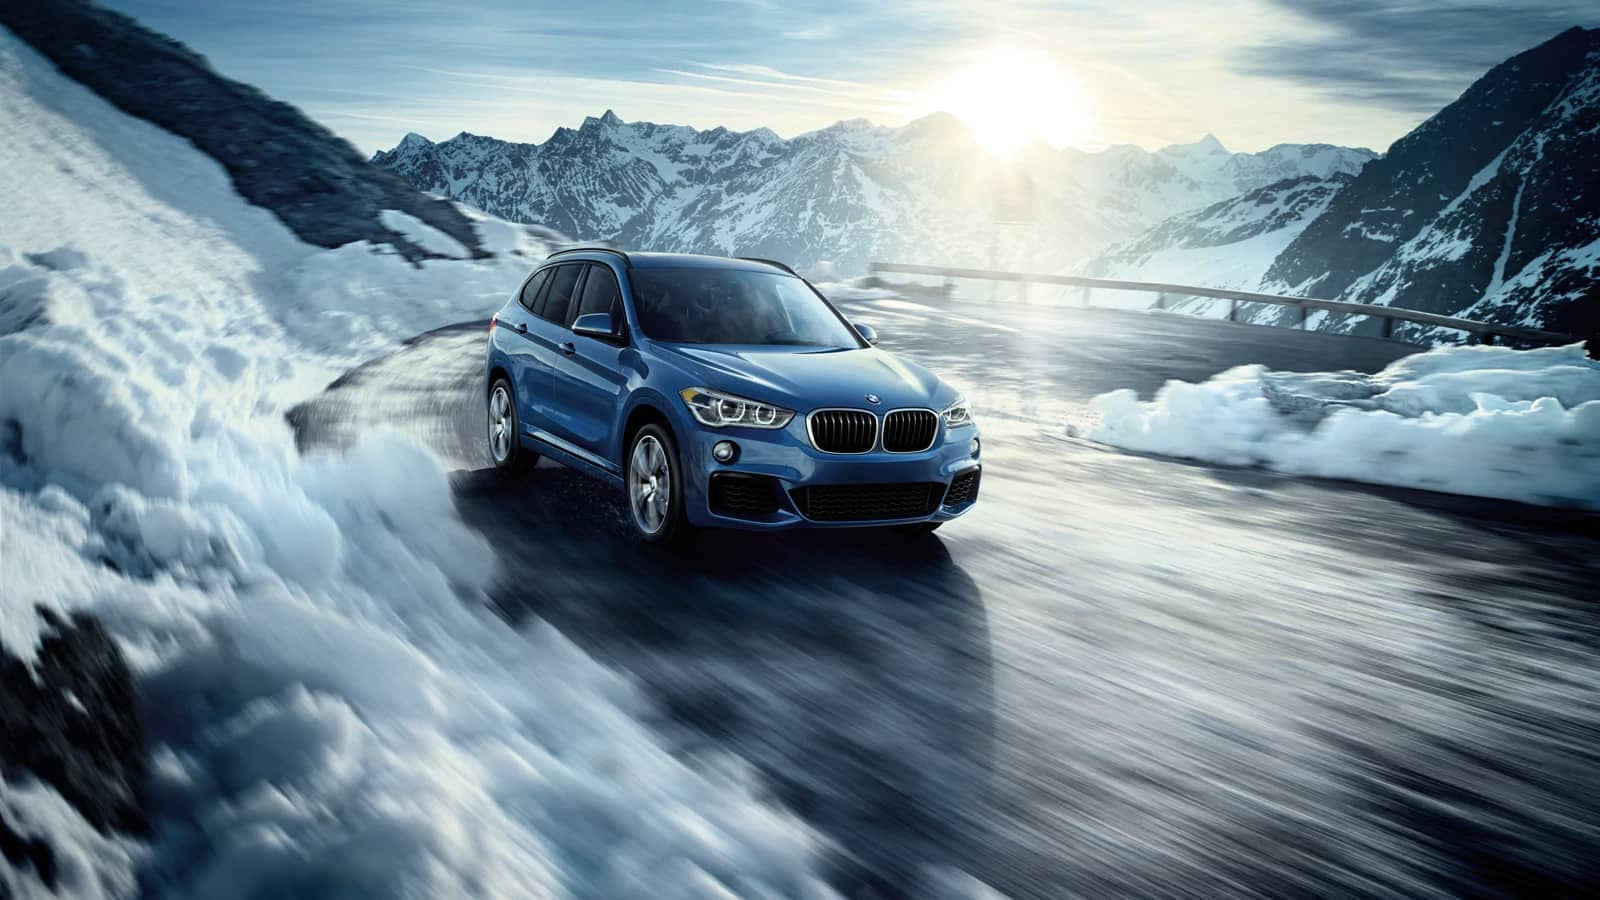 2019 BMW X1 all road traction